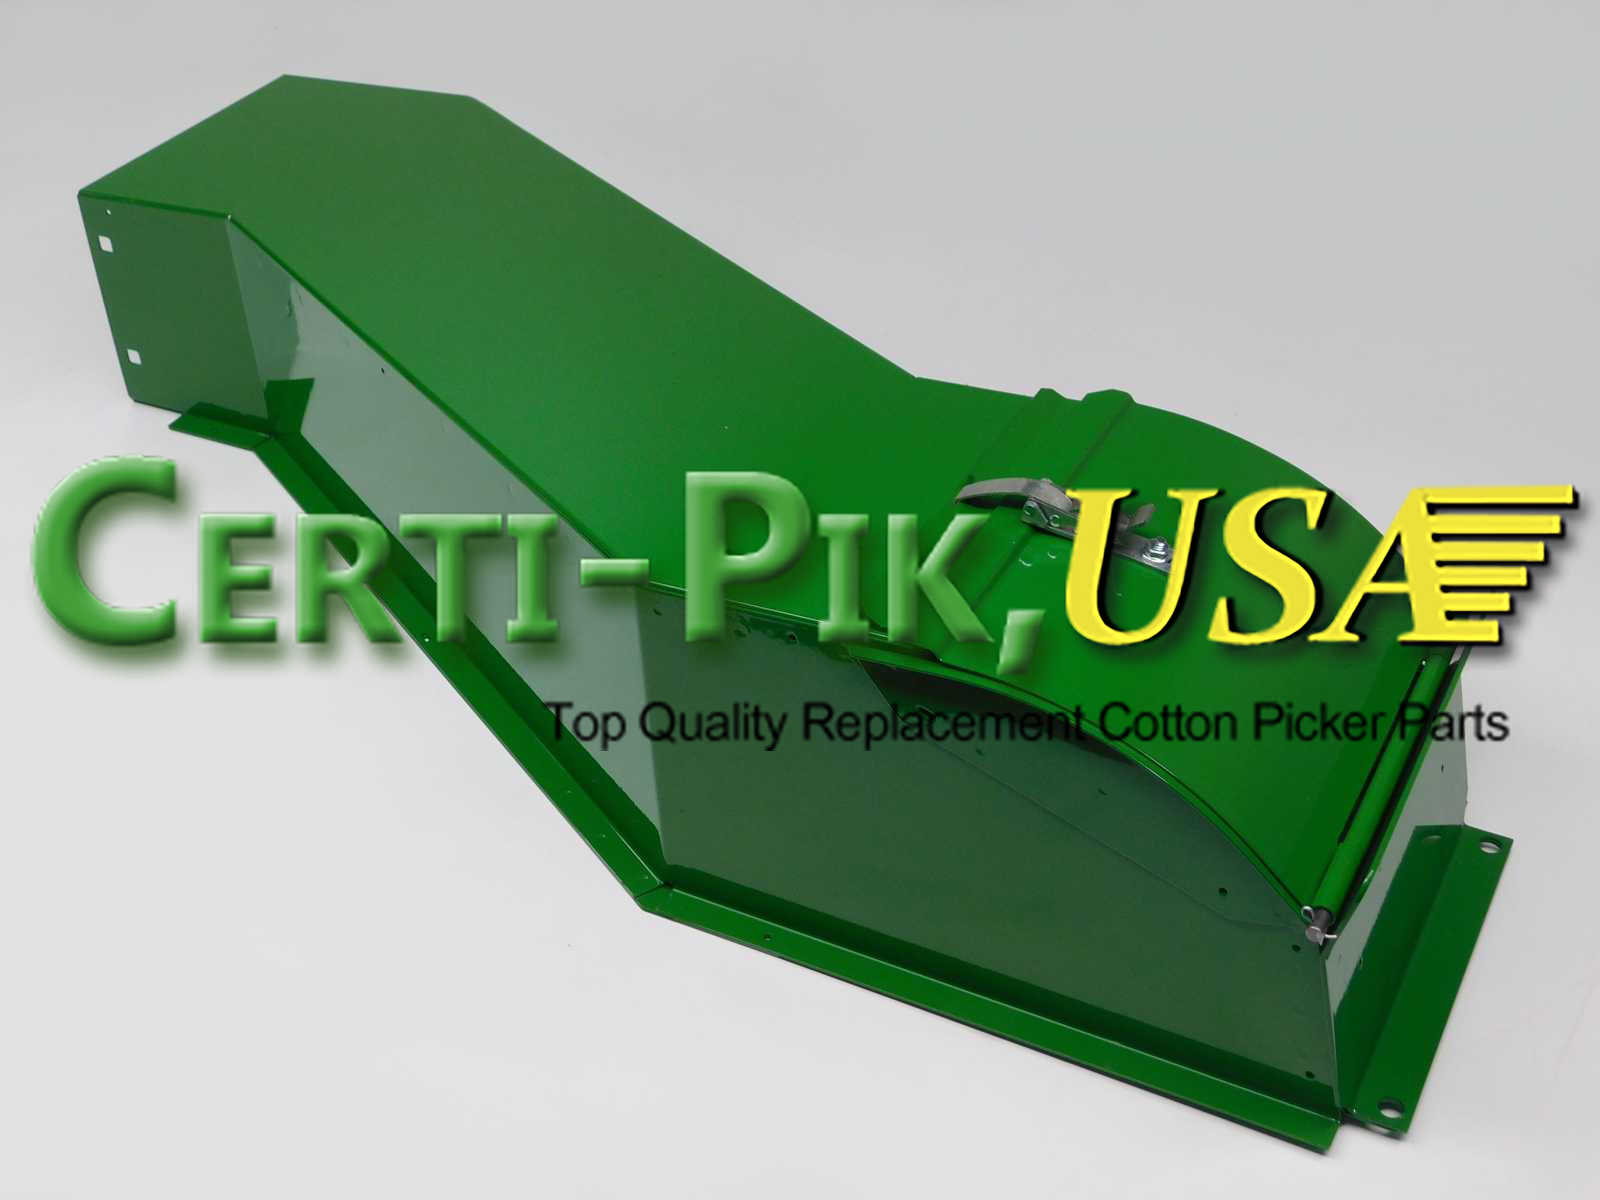 Air System: John Deere 9935-CP690 Pro Suction Door Parts AN276846 (76846) for Sale